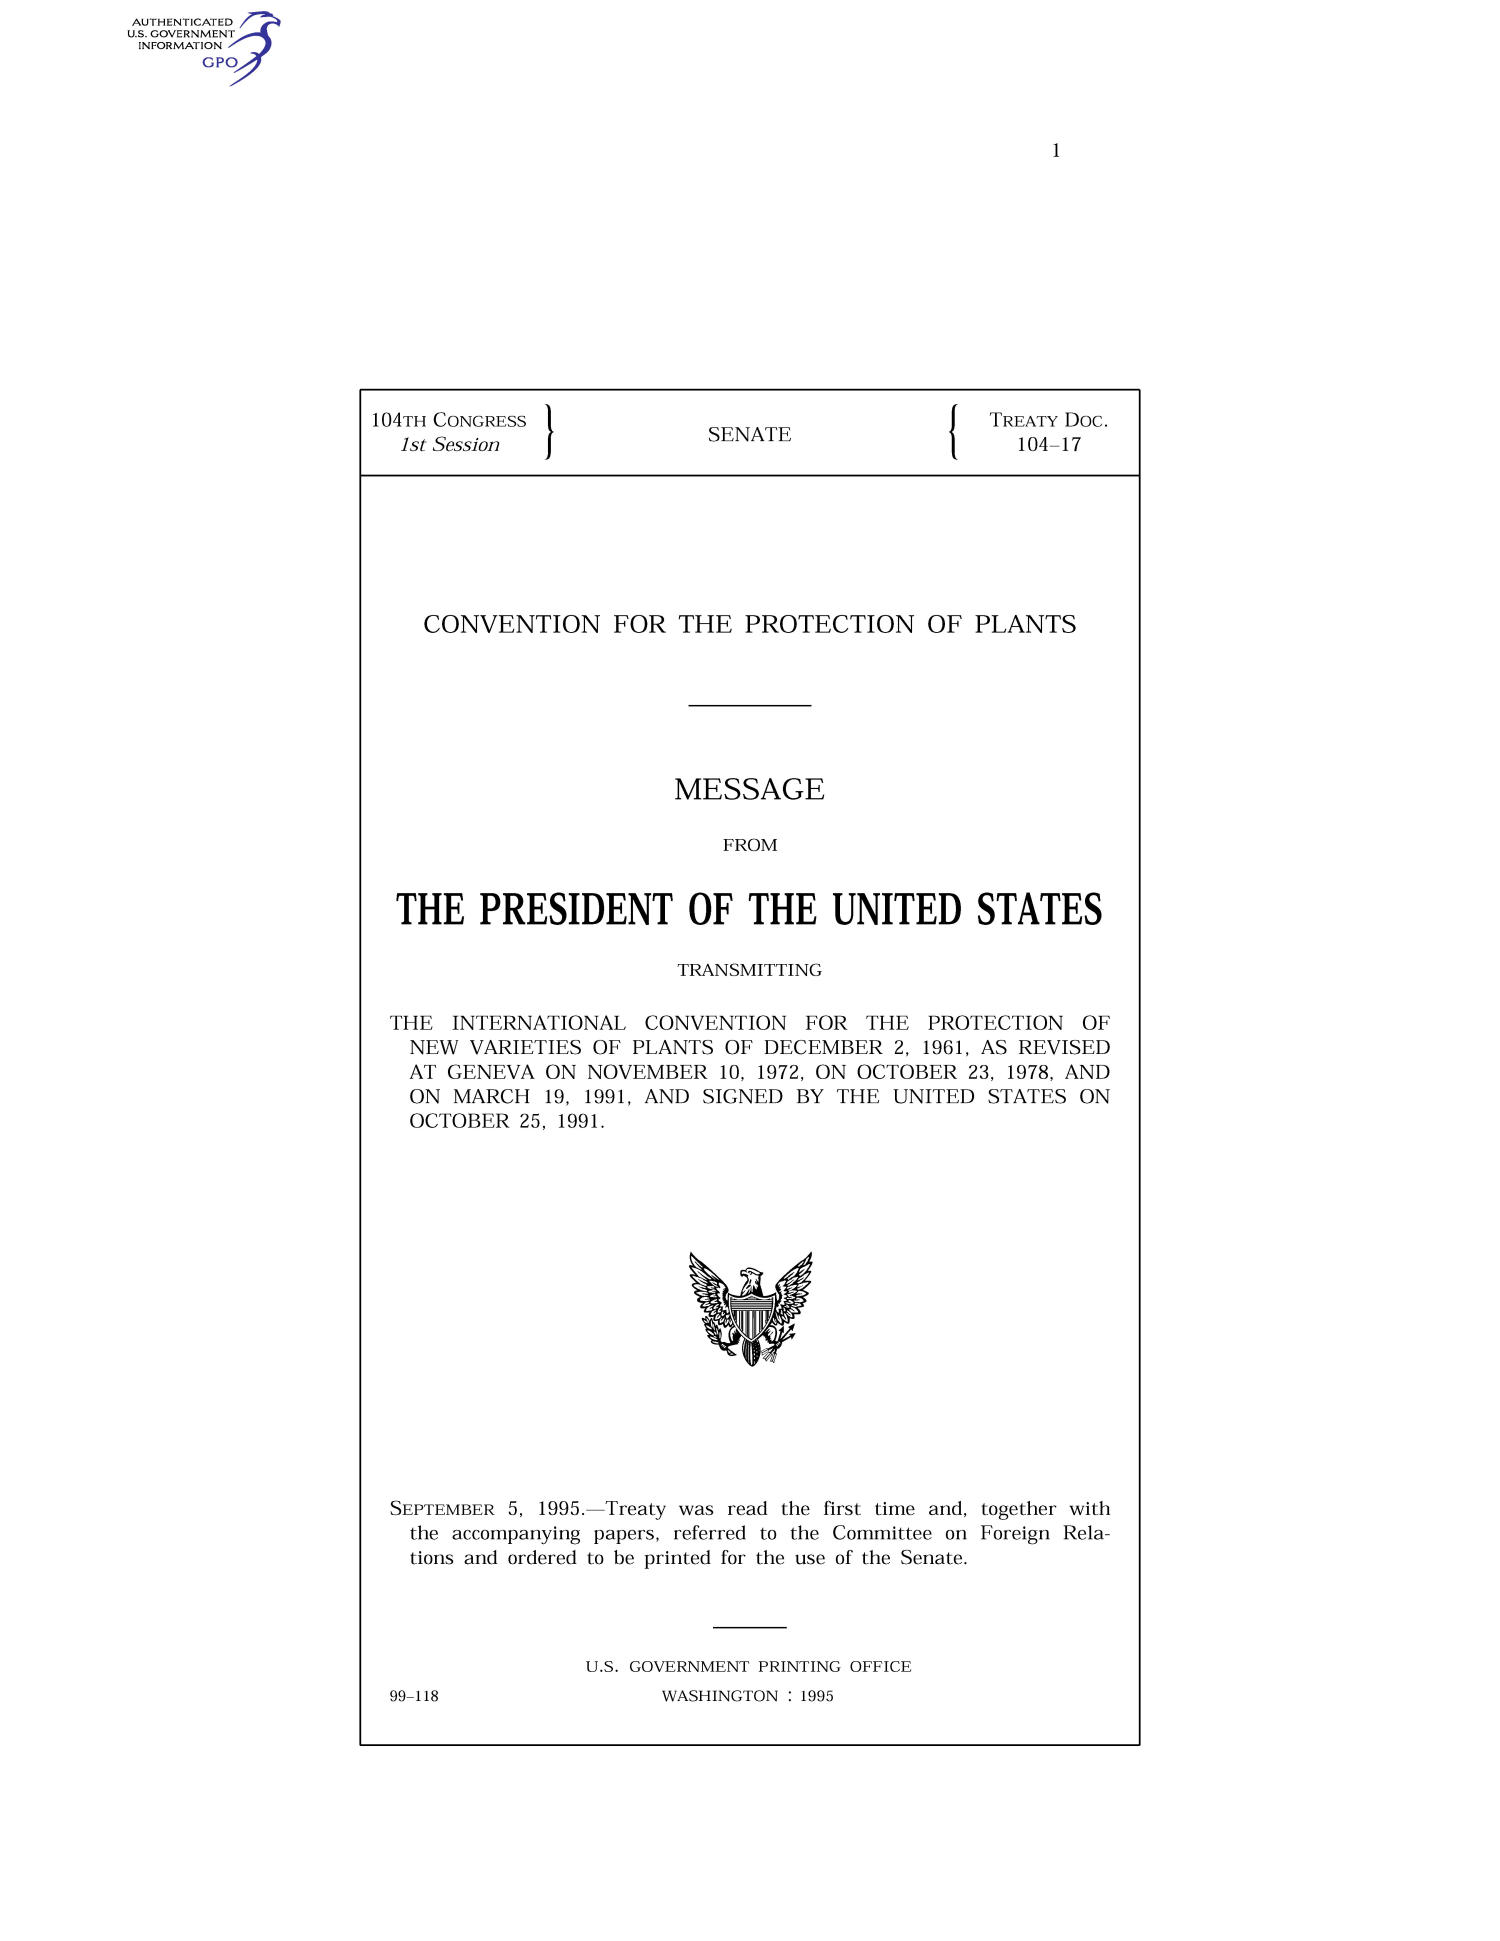 Convention for the Protection of Plants : message from the President of the United States transmitting the International Convention for the Protection of New Varieties of Plants of December 2, 1961, as revised at Geneva on November 10, 1972, on October 23, 1978, and on March 19, 1991, and signed by the United States on October 25, 1991                                                                                                      Front Cover